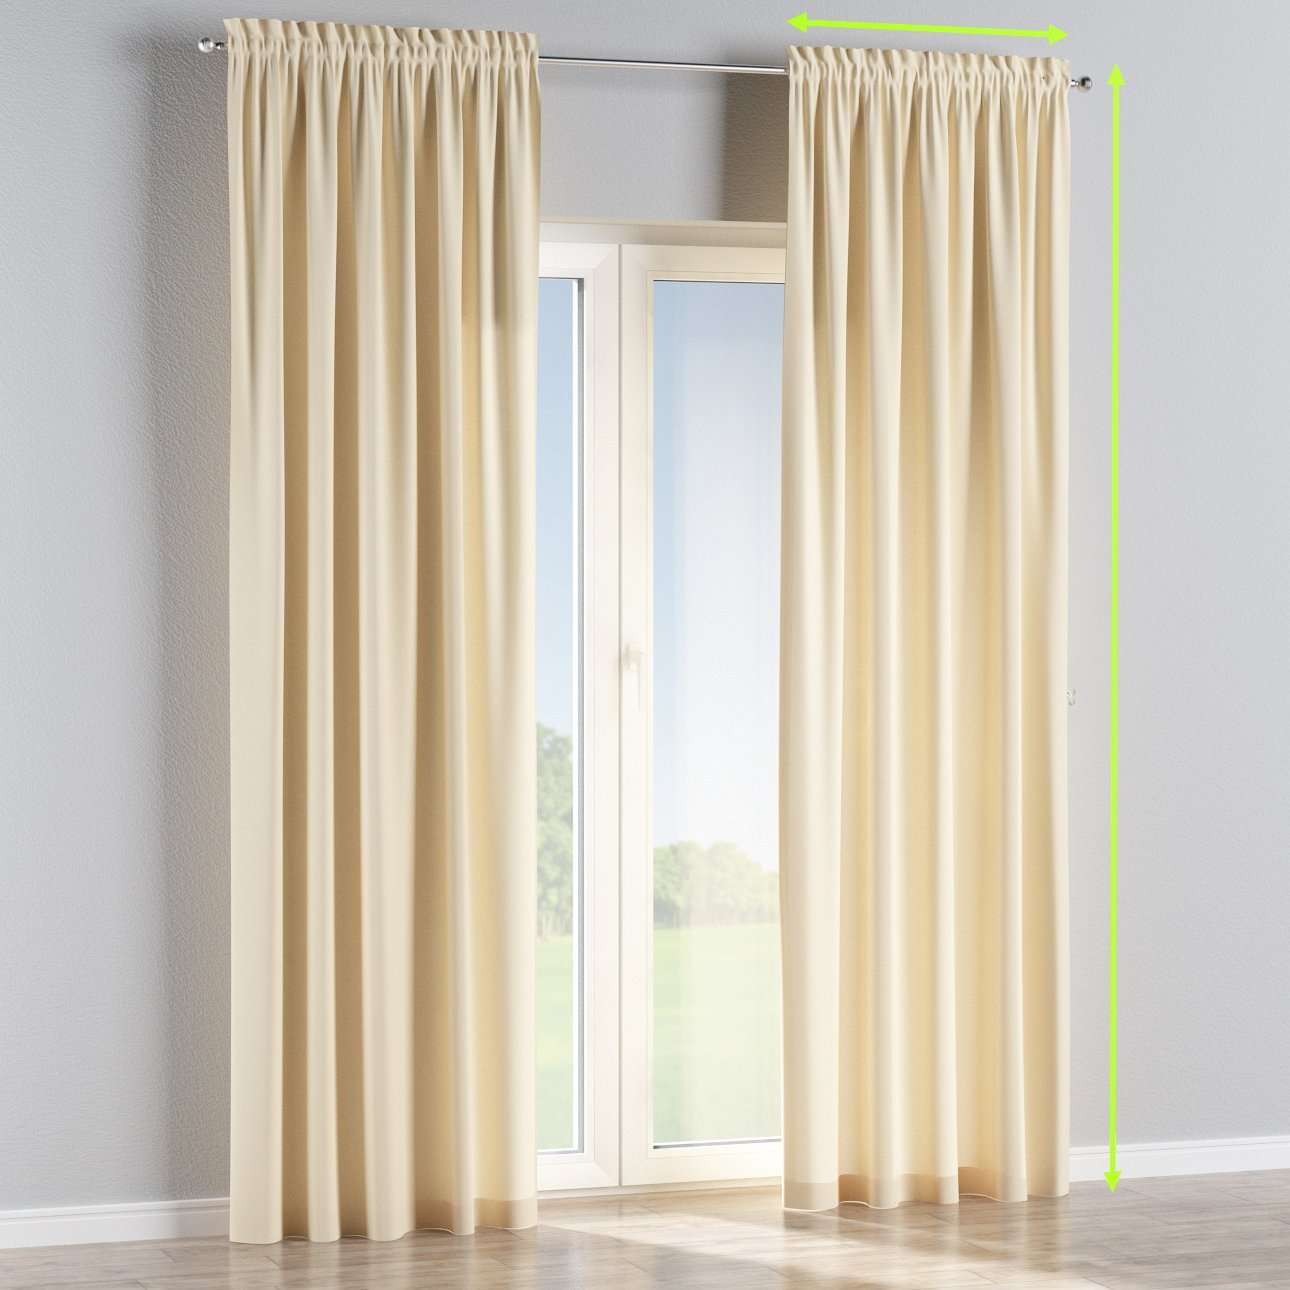 Slot and frill curtains in collection Cotton Panama, fabric: 702-29